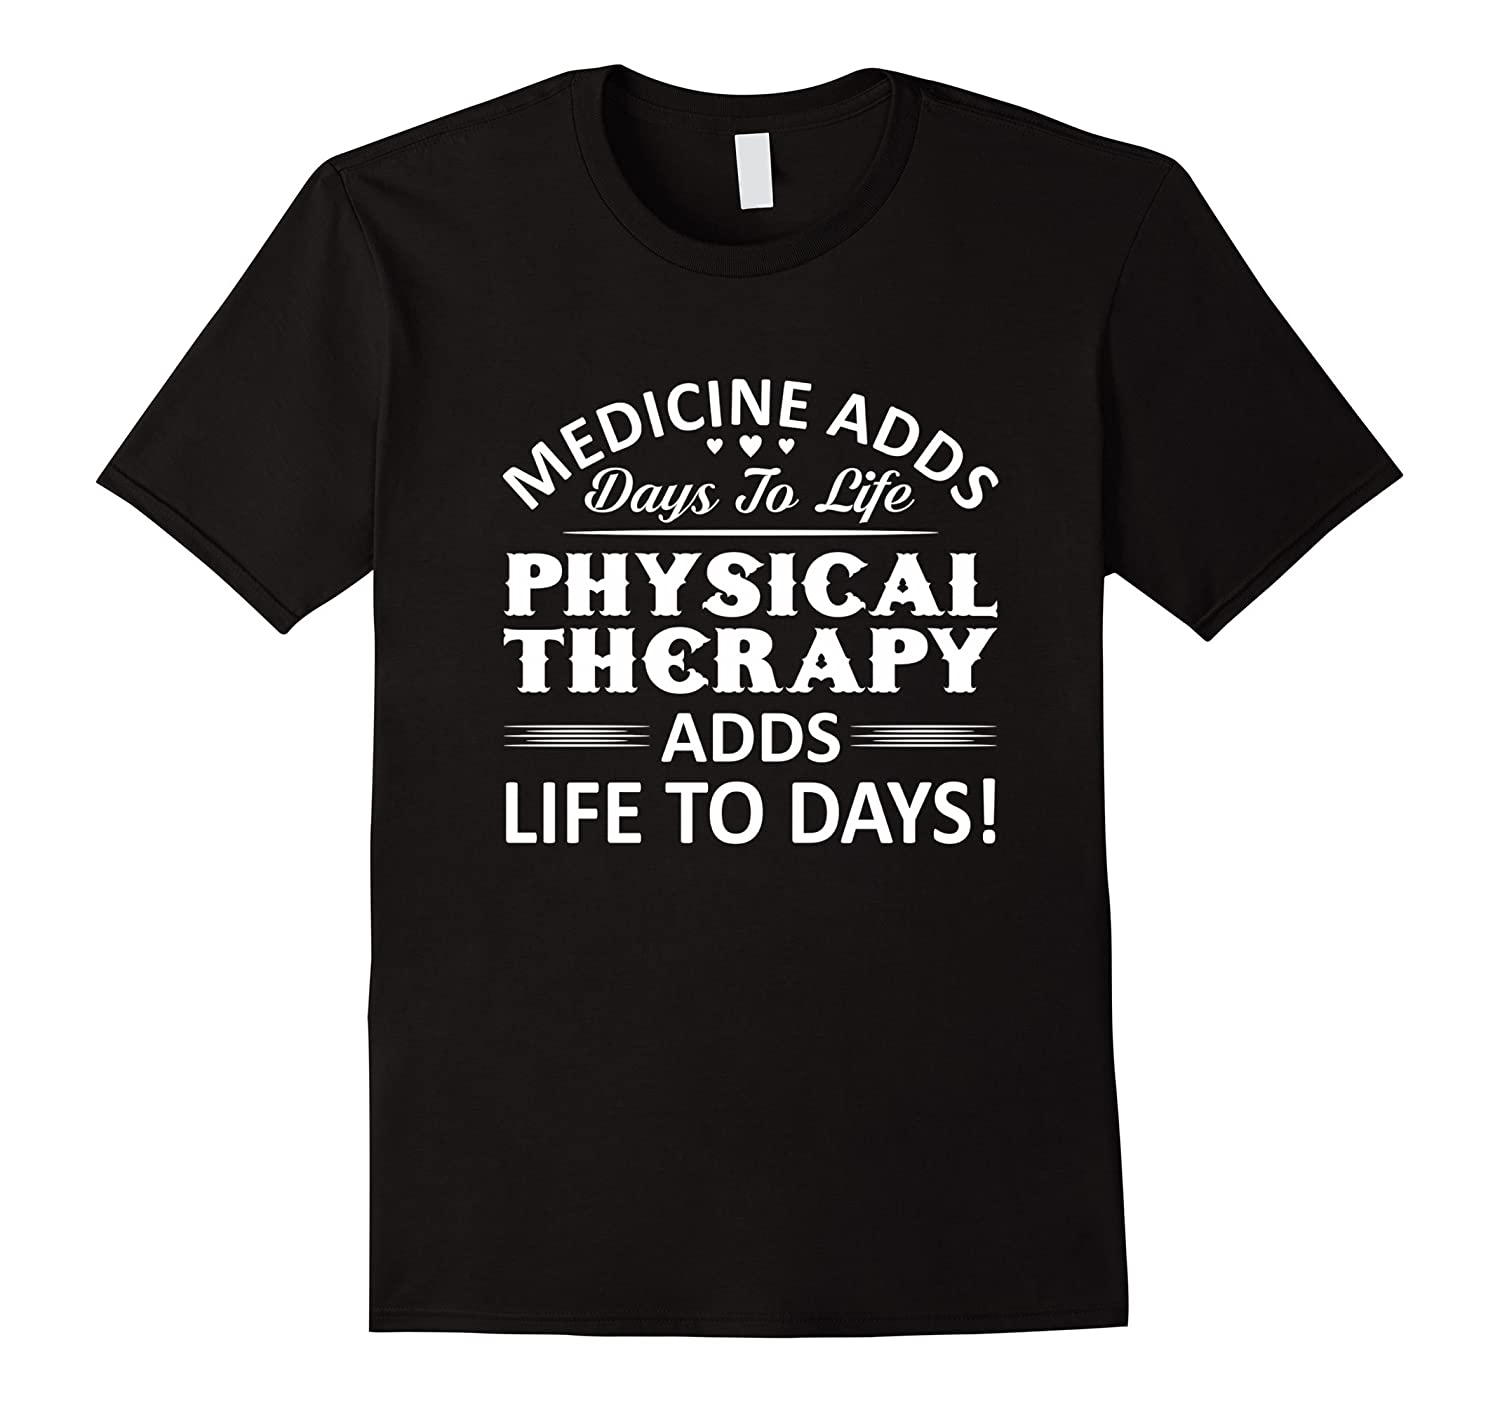 Medicine Adds Days To Life Physical Therapy Adds Life To Day 2-TJ